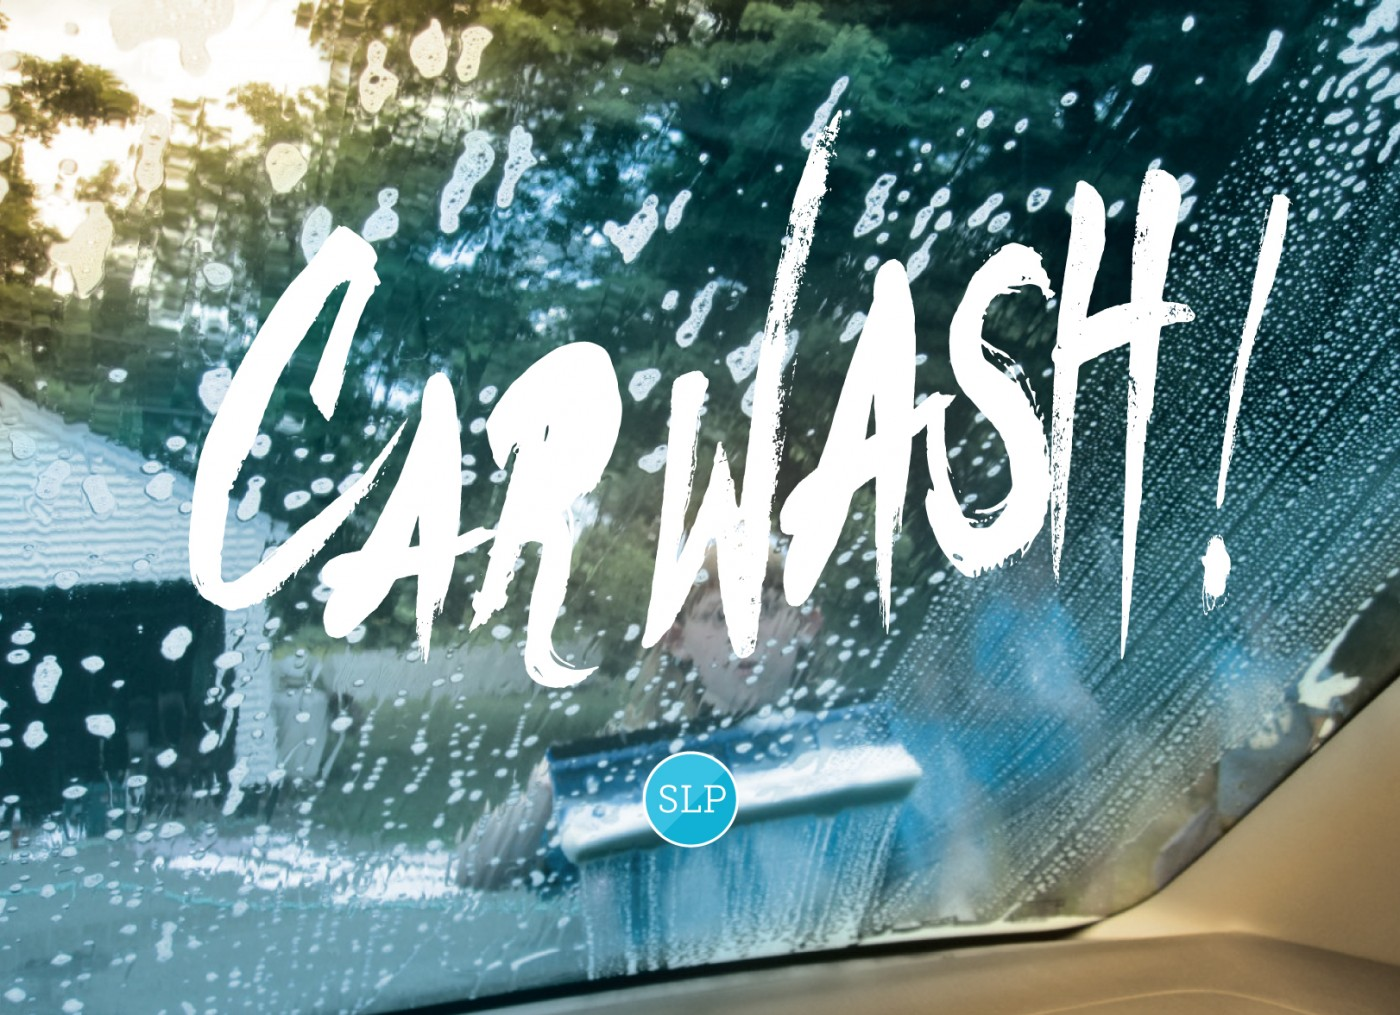 Fundraiser: Car Wash!